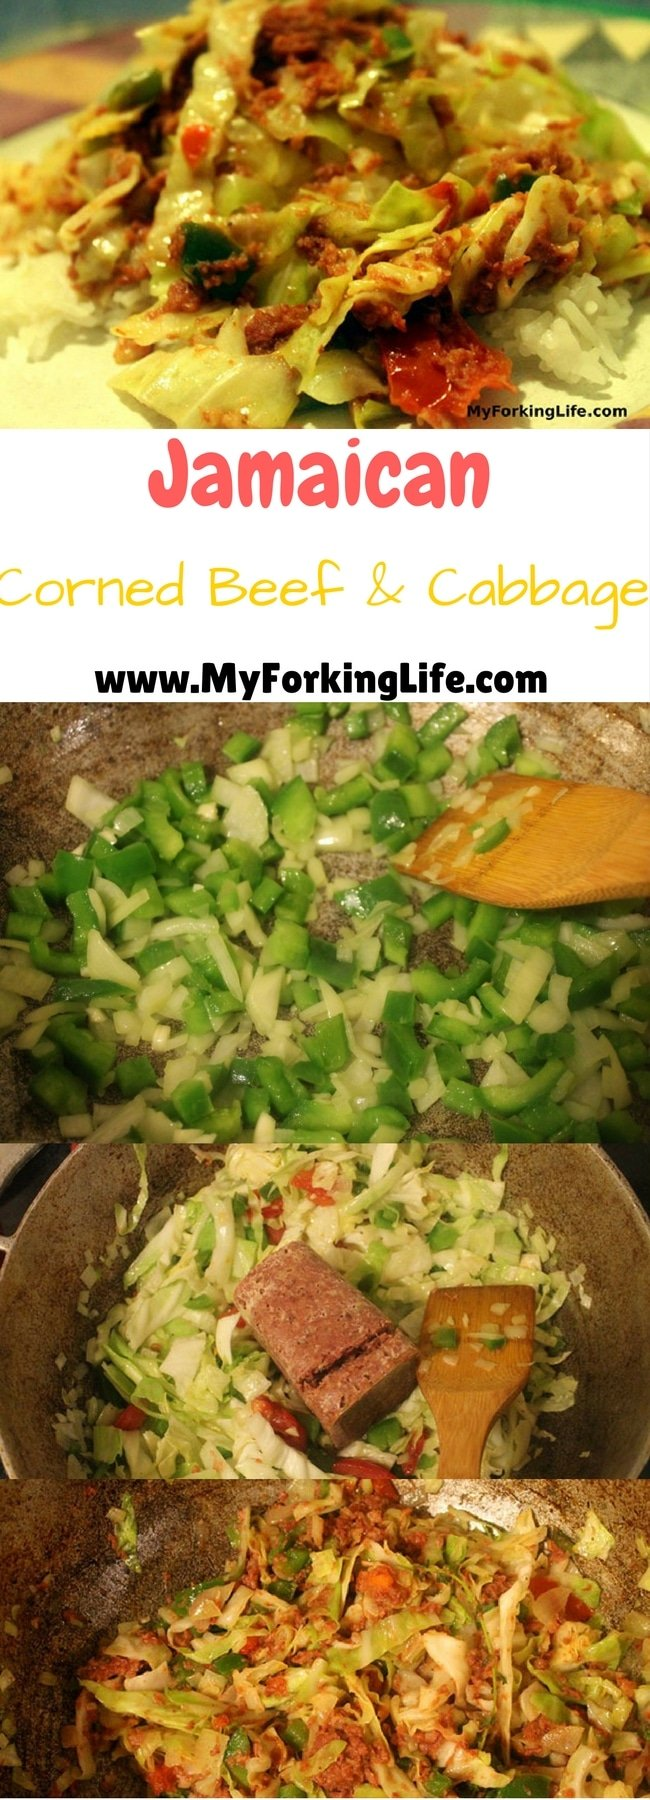 Pinterest image for corned beef and cabbage